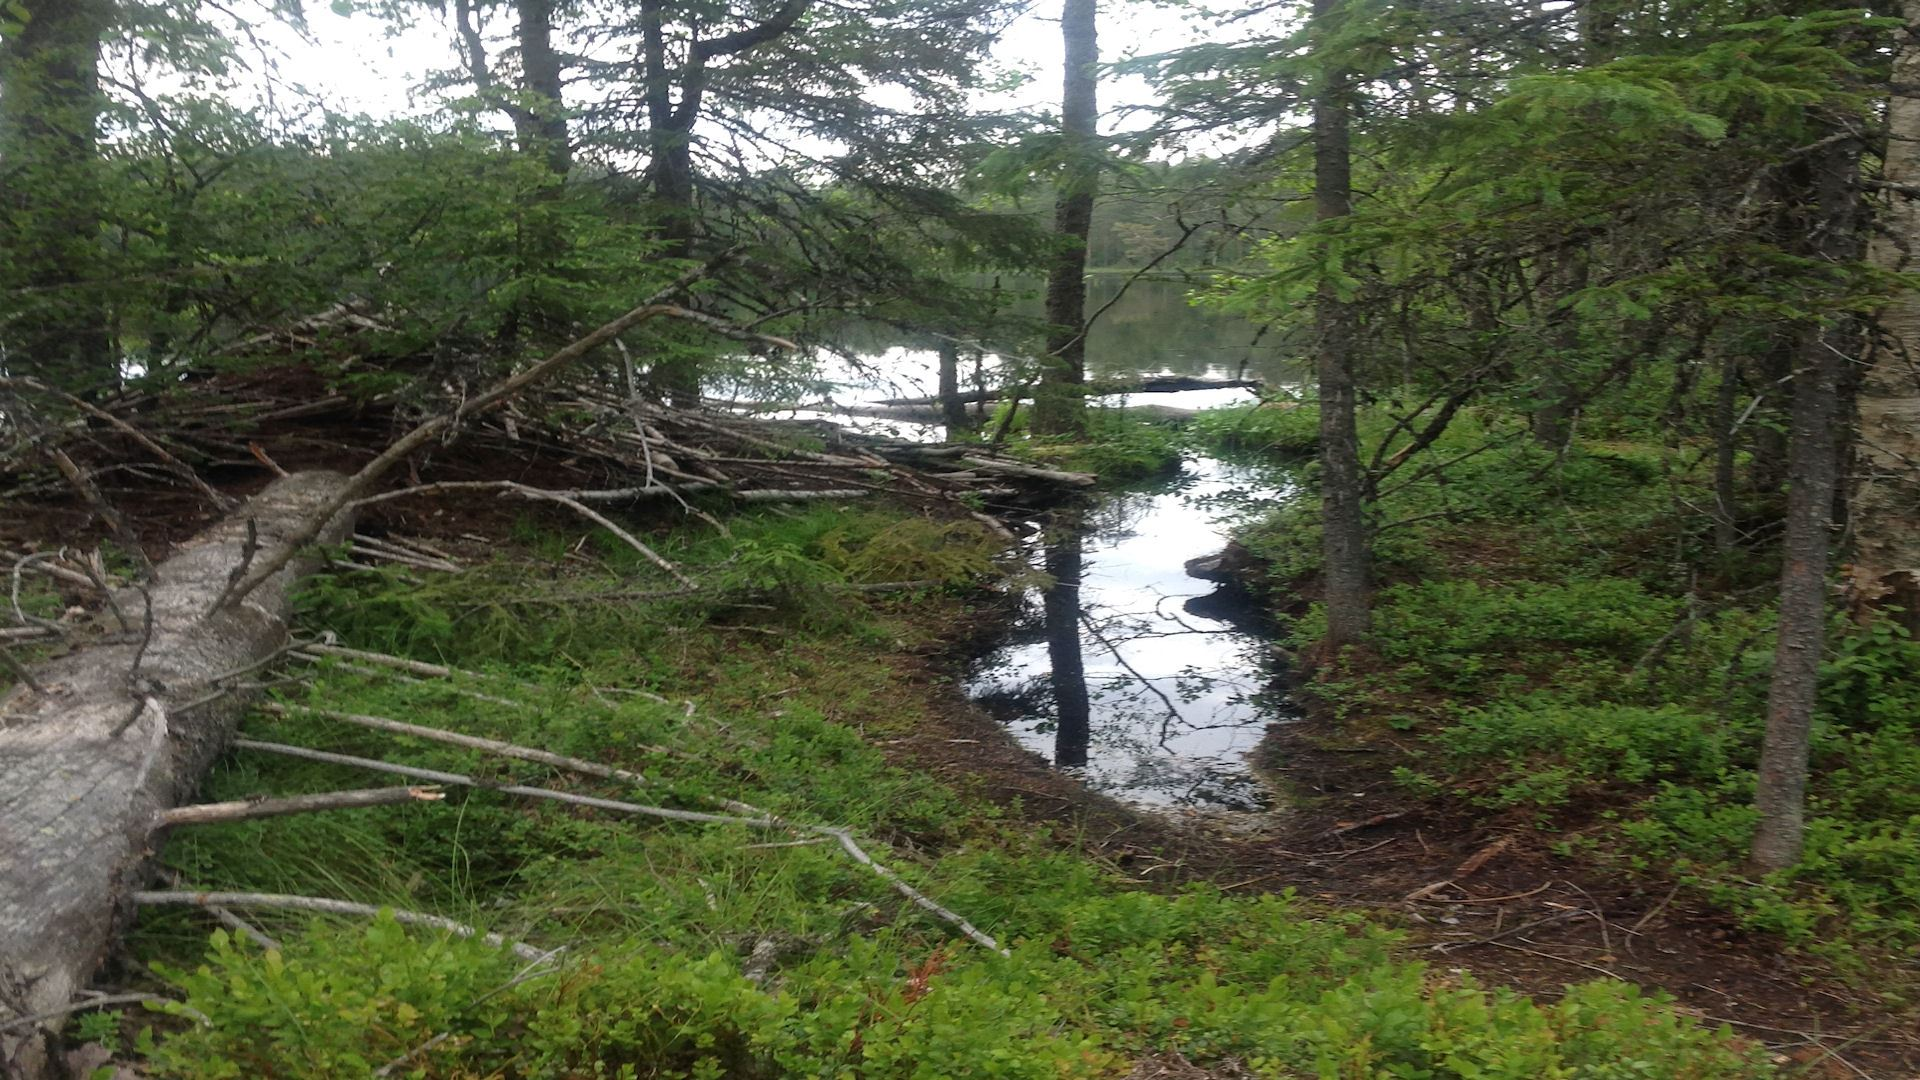 Combined canoeing and hiking trip to the beavers' territory with friends or family